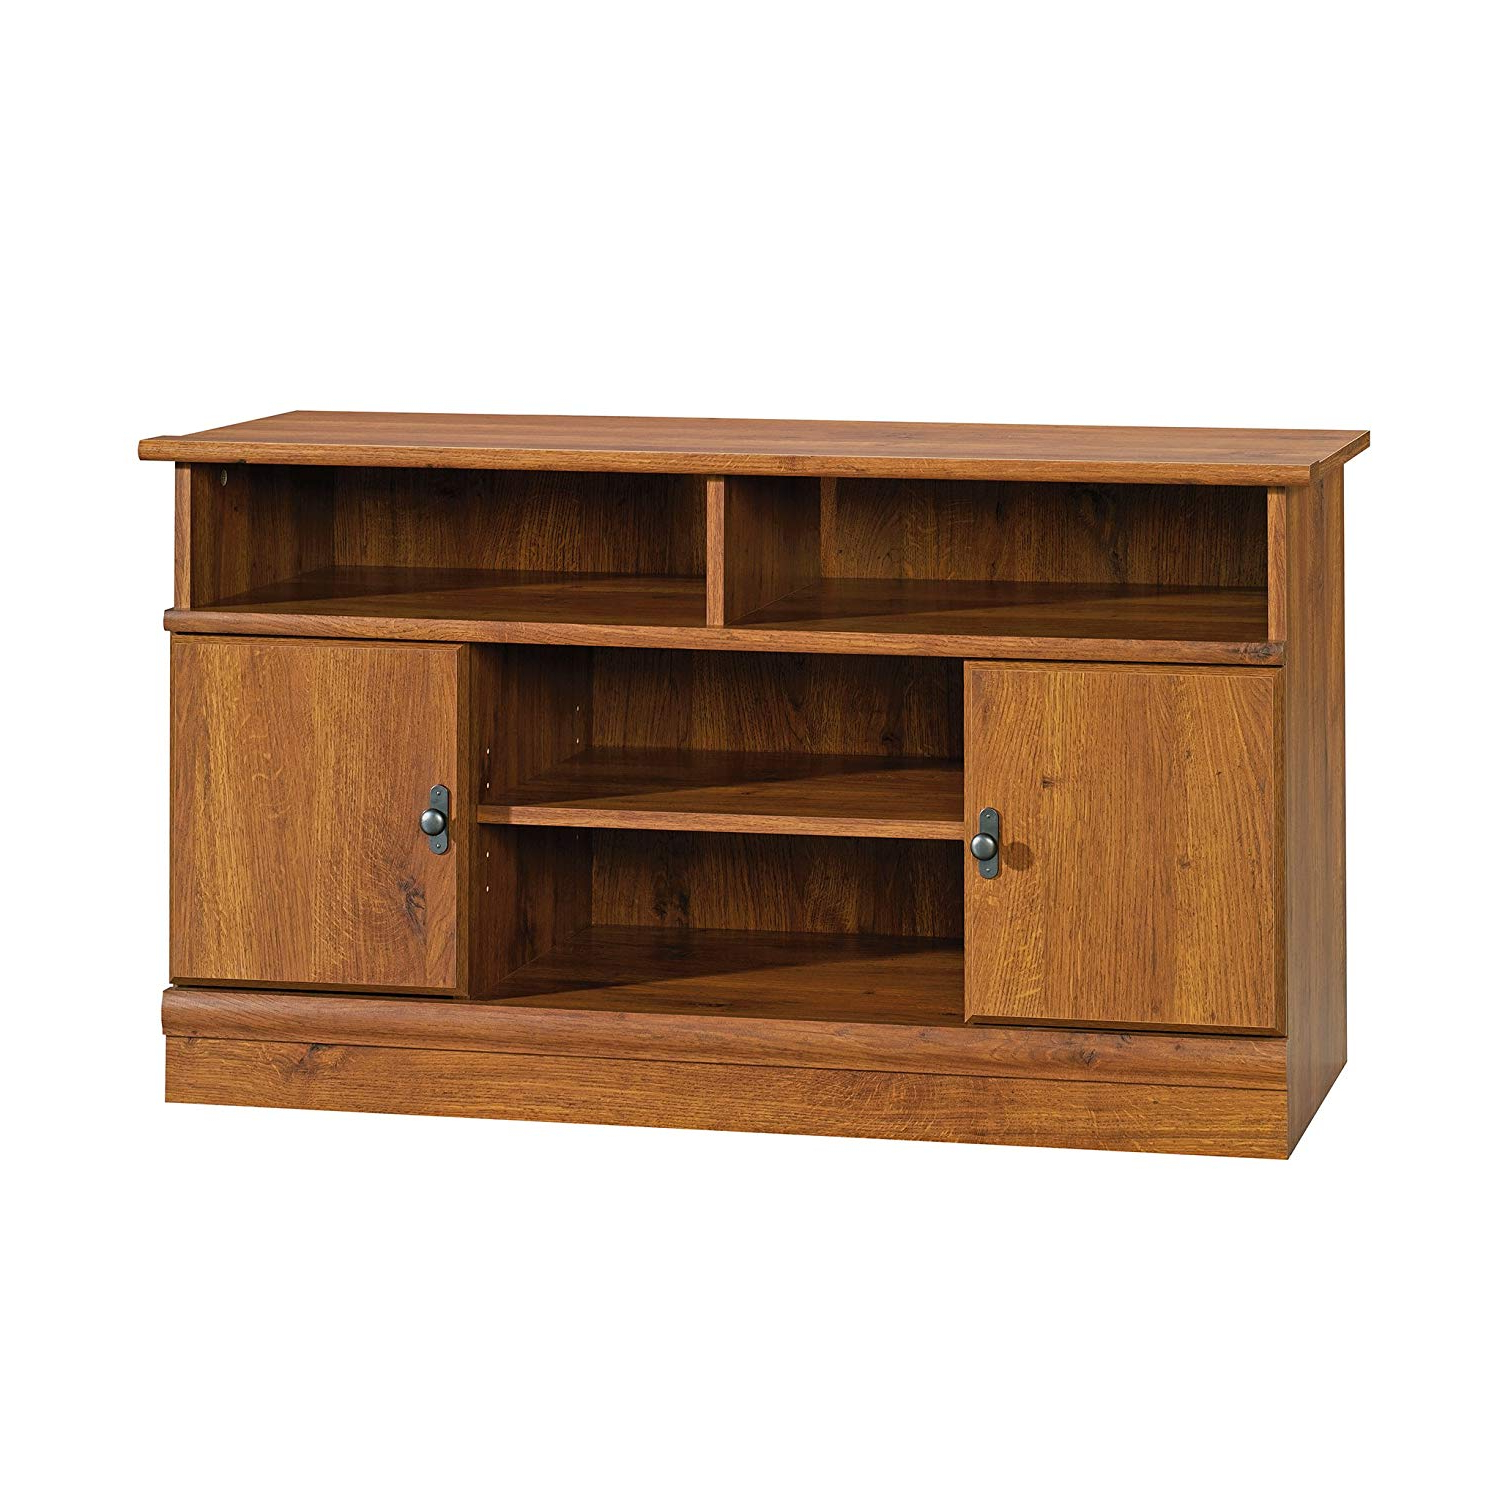 Current Honey Oak Tv Stands Regarding Amazon: Sauder 407432 Harvest Mill Panel Tv Stand, For Tv's Up (View 5 of 20)